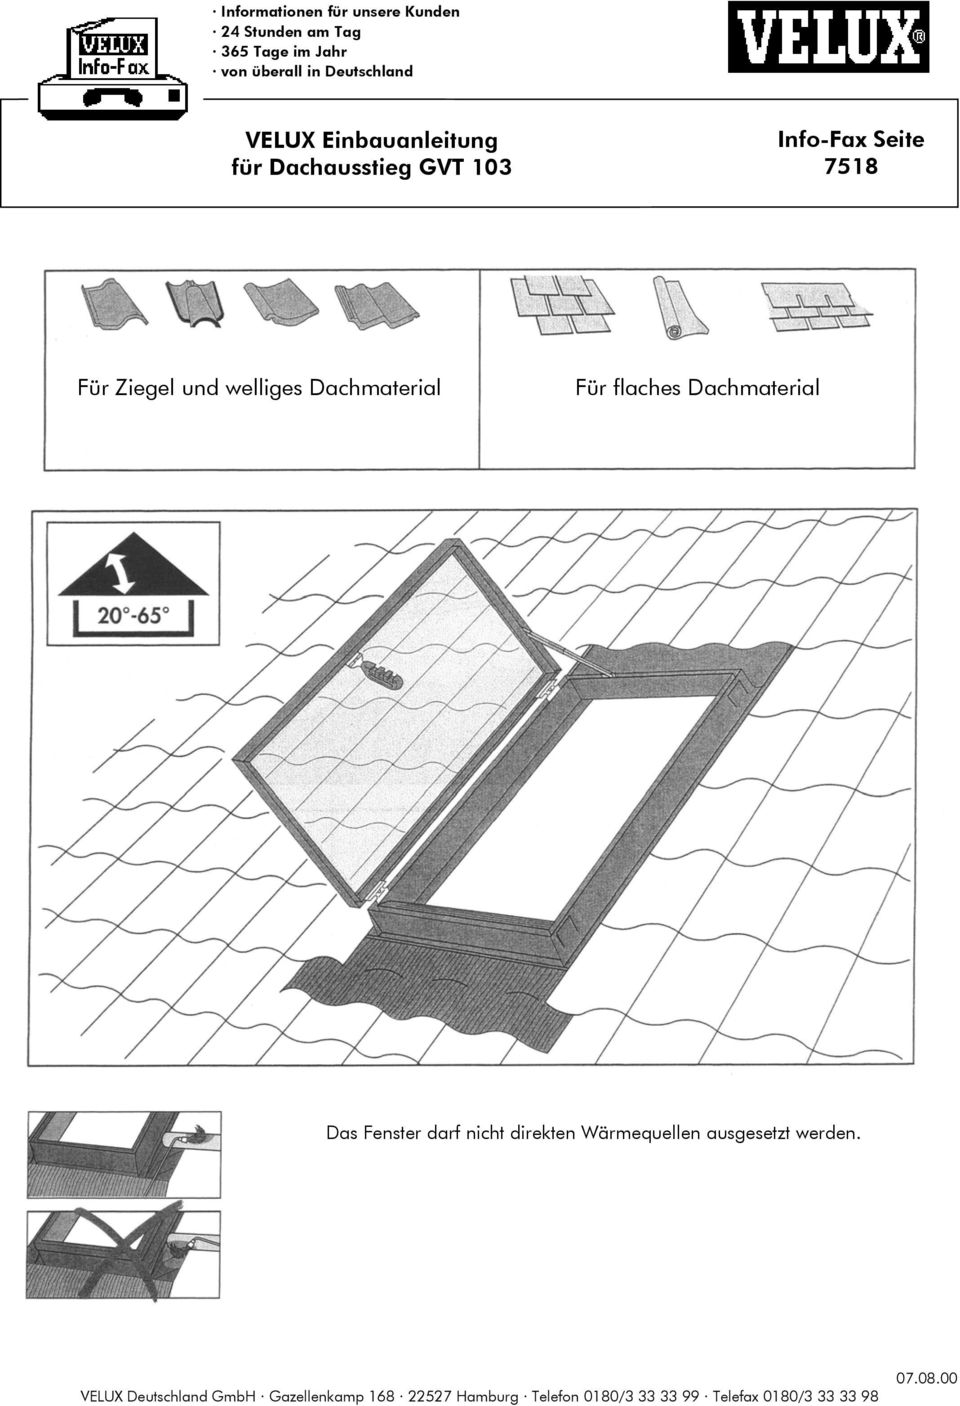 velux einbauanleitung f r dachausstieg gvt pdf. Black Bedroom Furniture Sets. Home Design Ideas